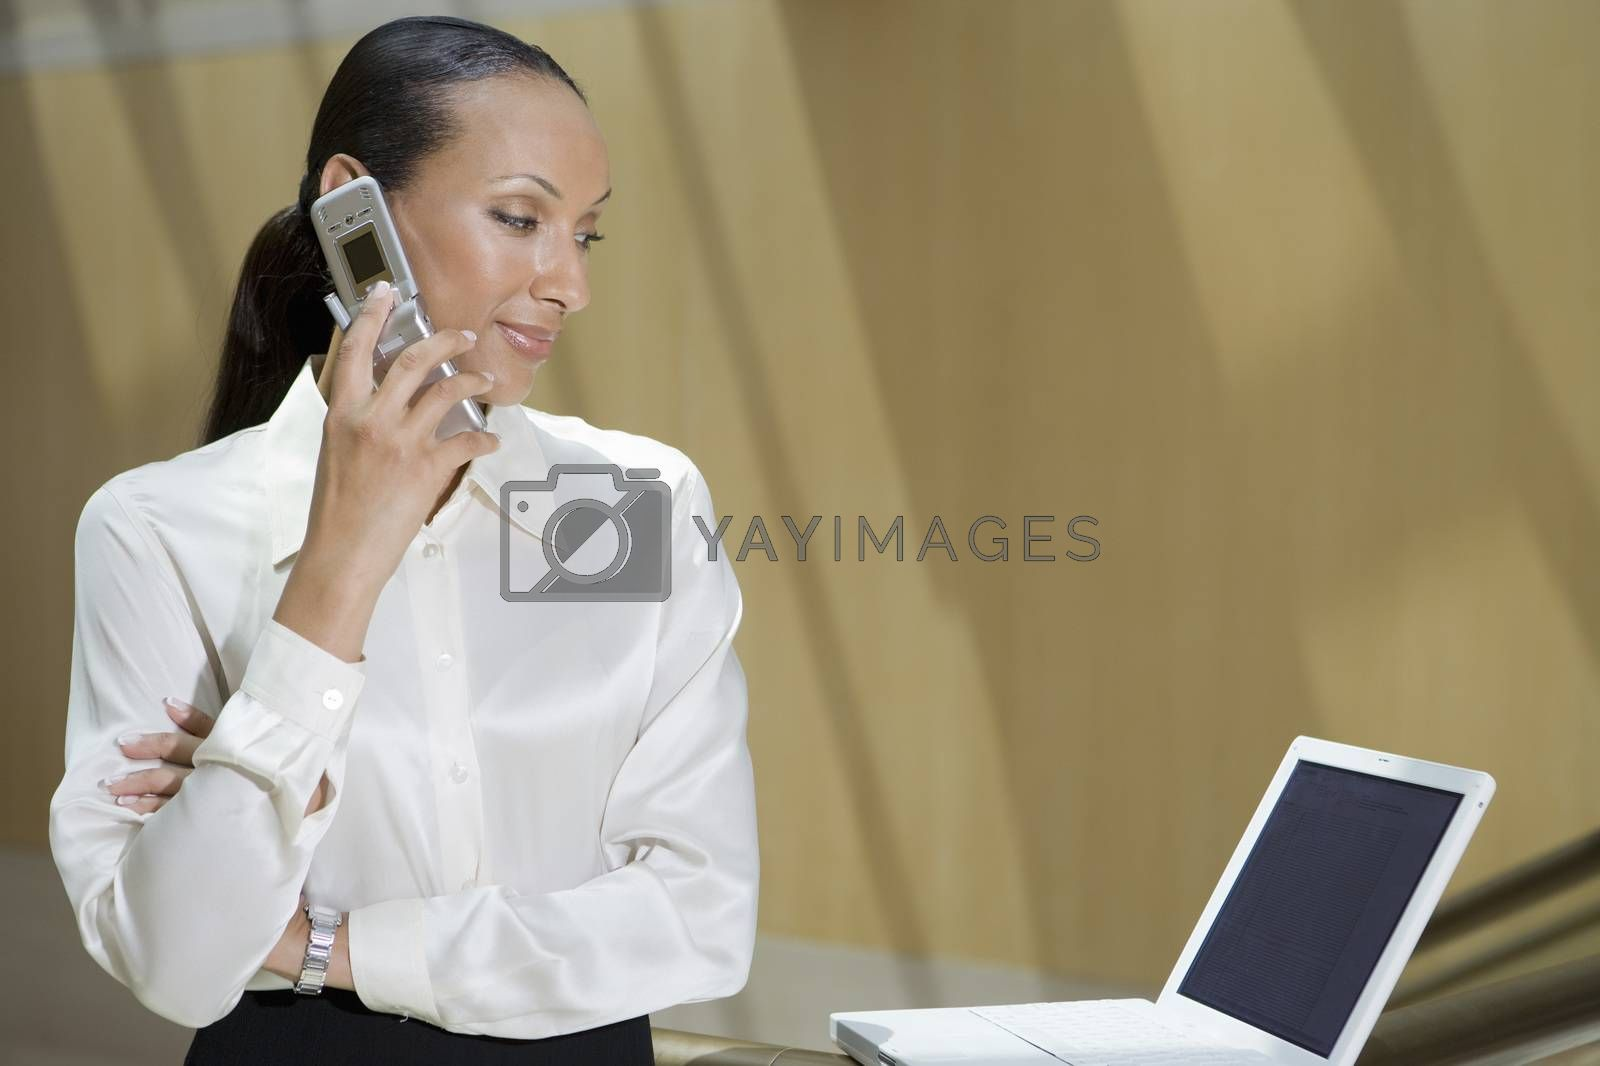 Businesswoman Using Mobile Phone While Looking At Laptop